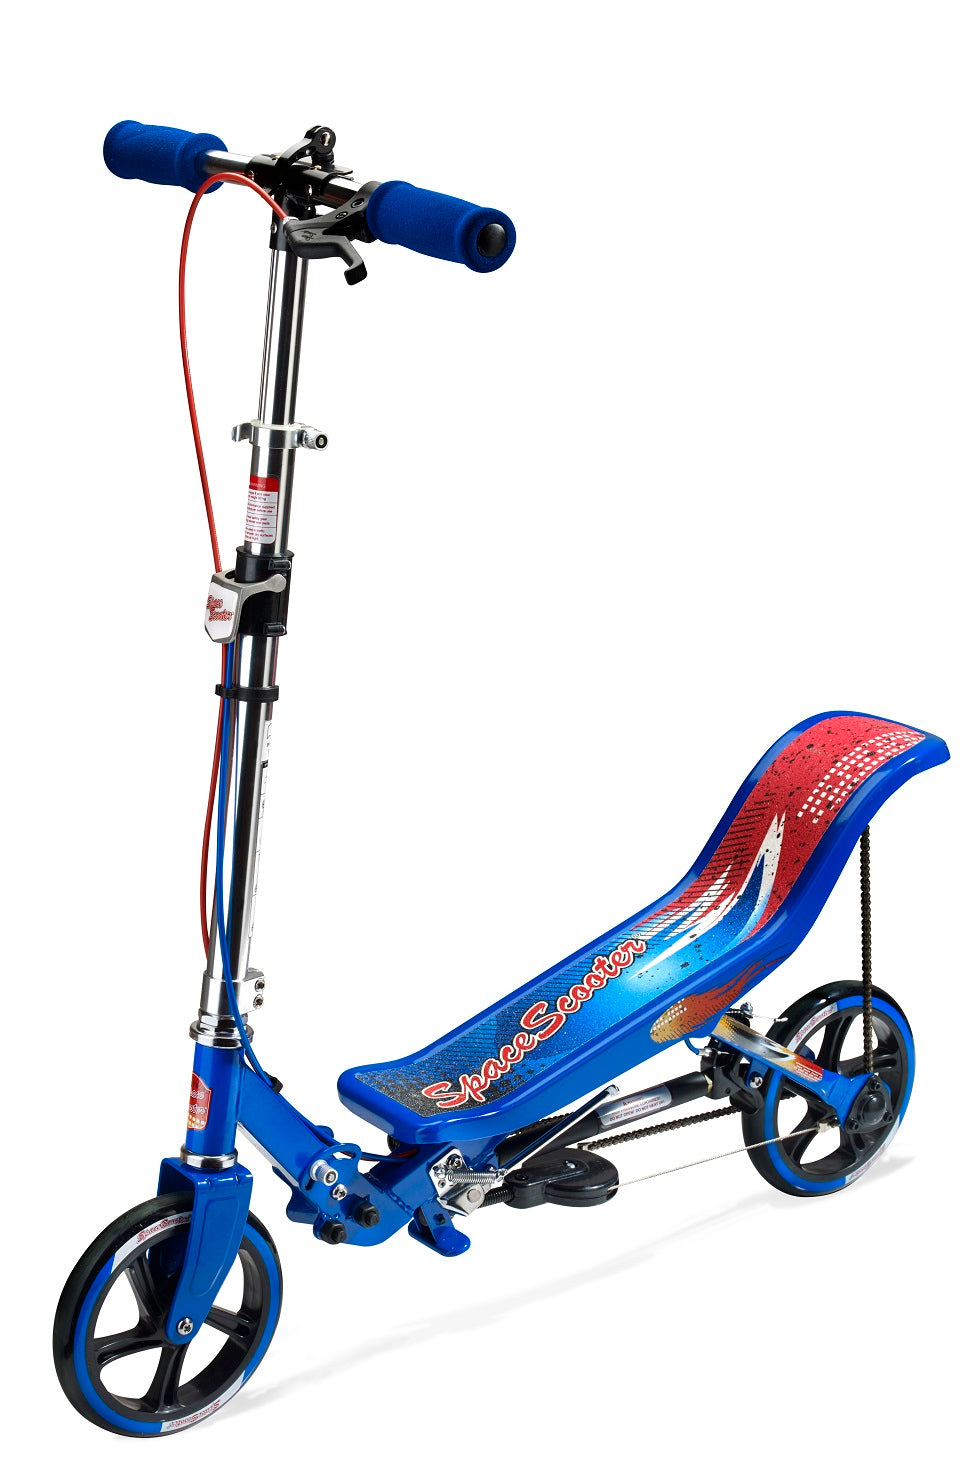 Refurbished Space Scooter (X580) - Blauw (REFSPBLU2)